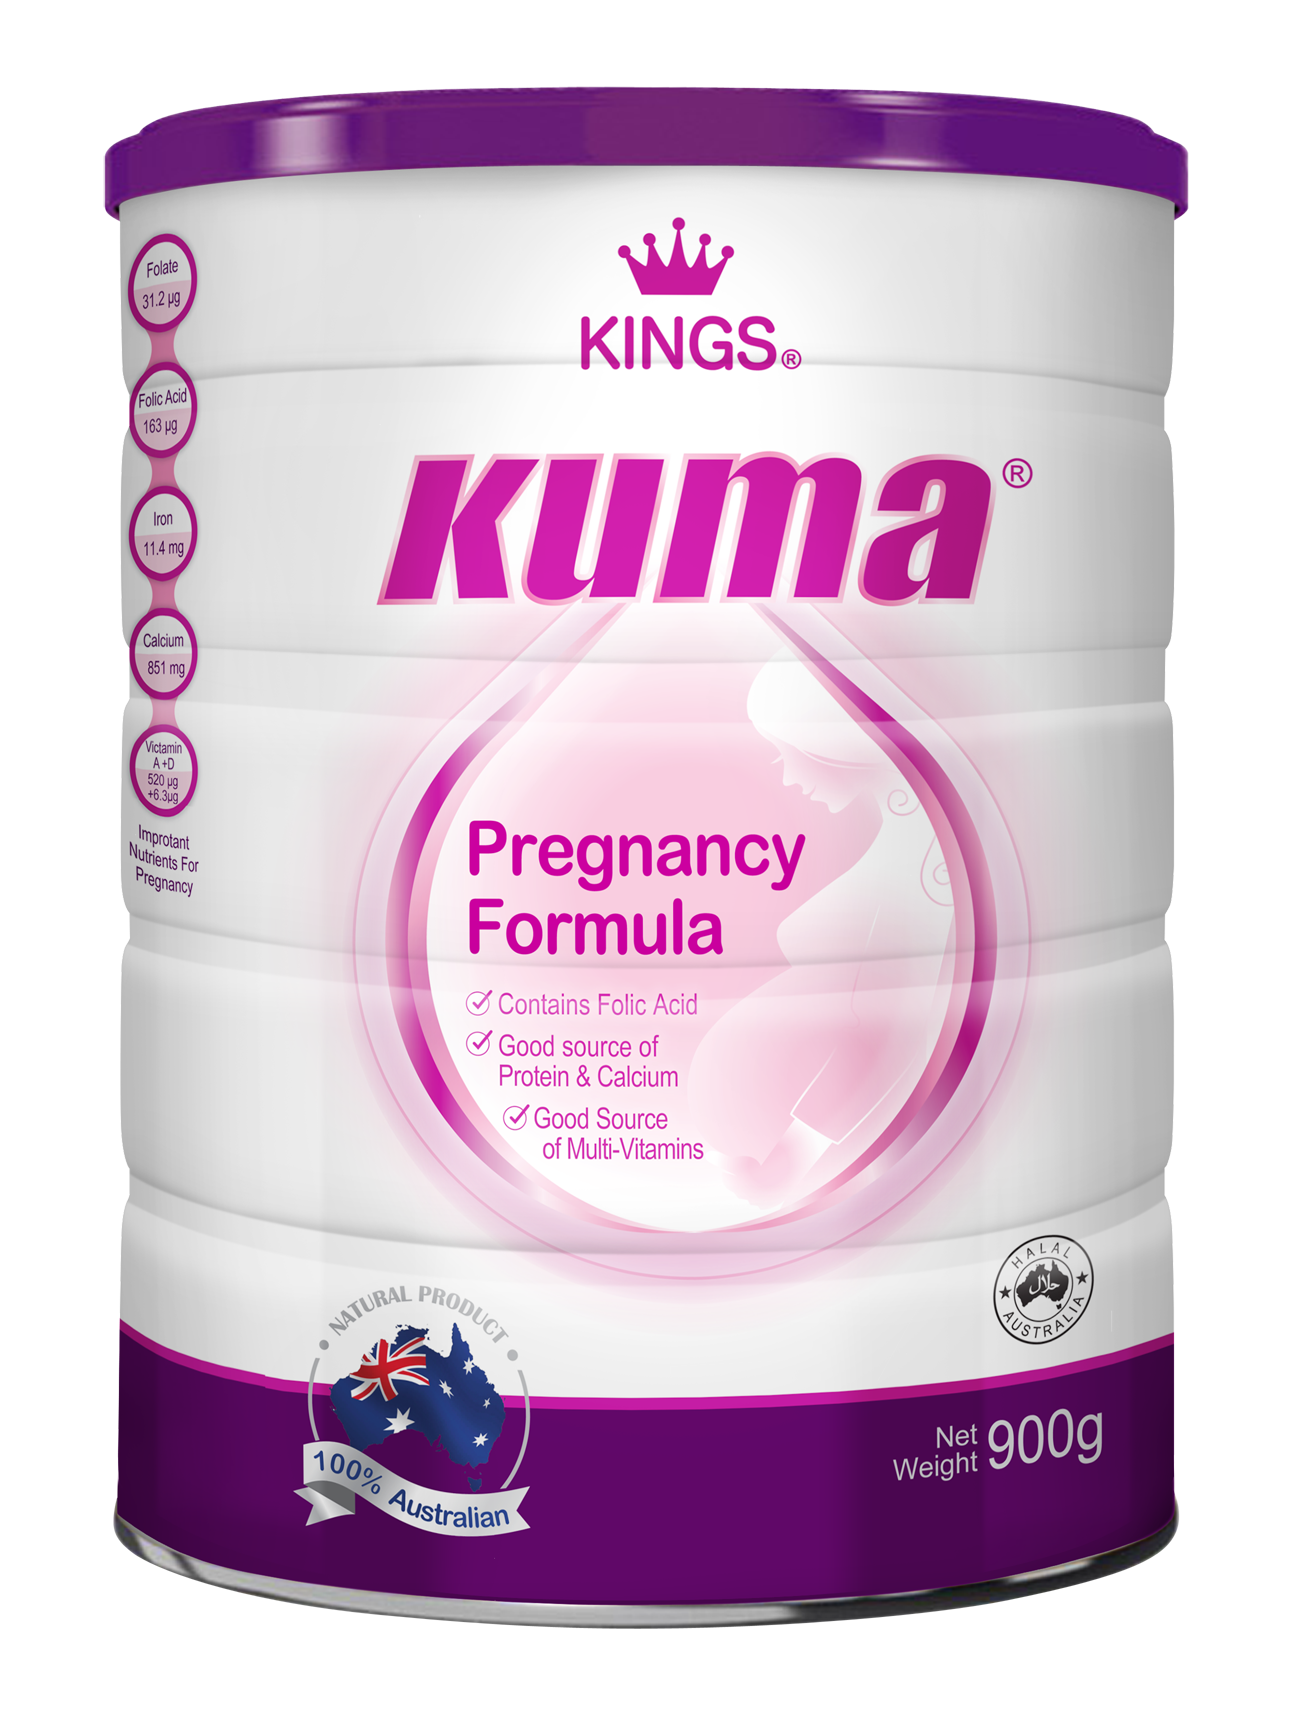 Kings kuma pregnancy formula, supplements